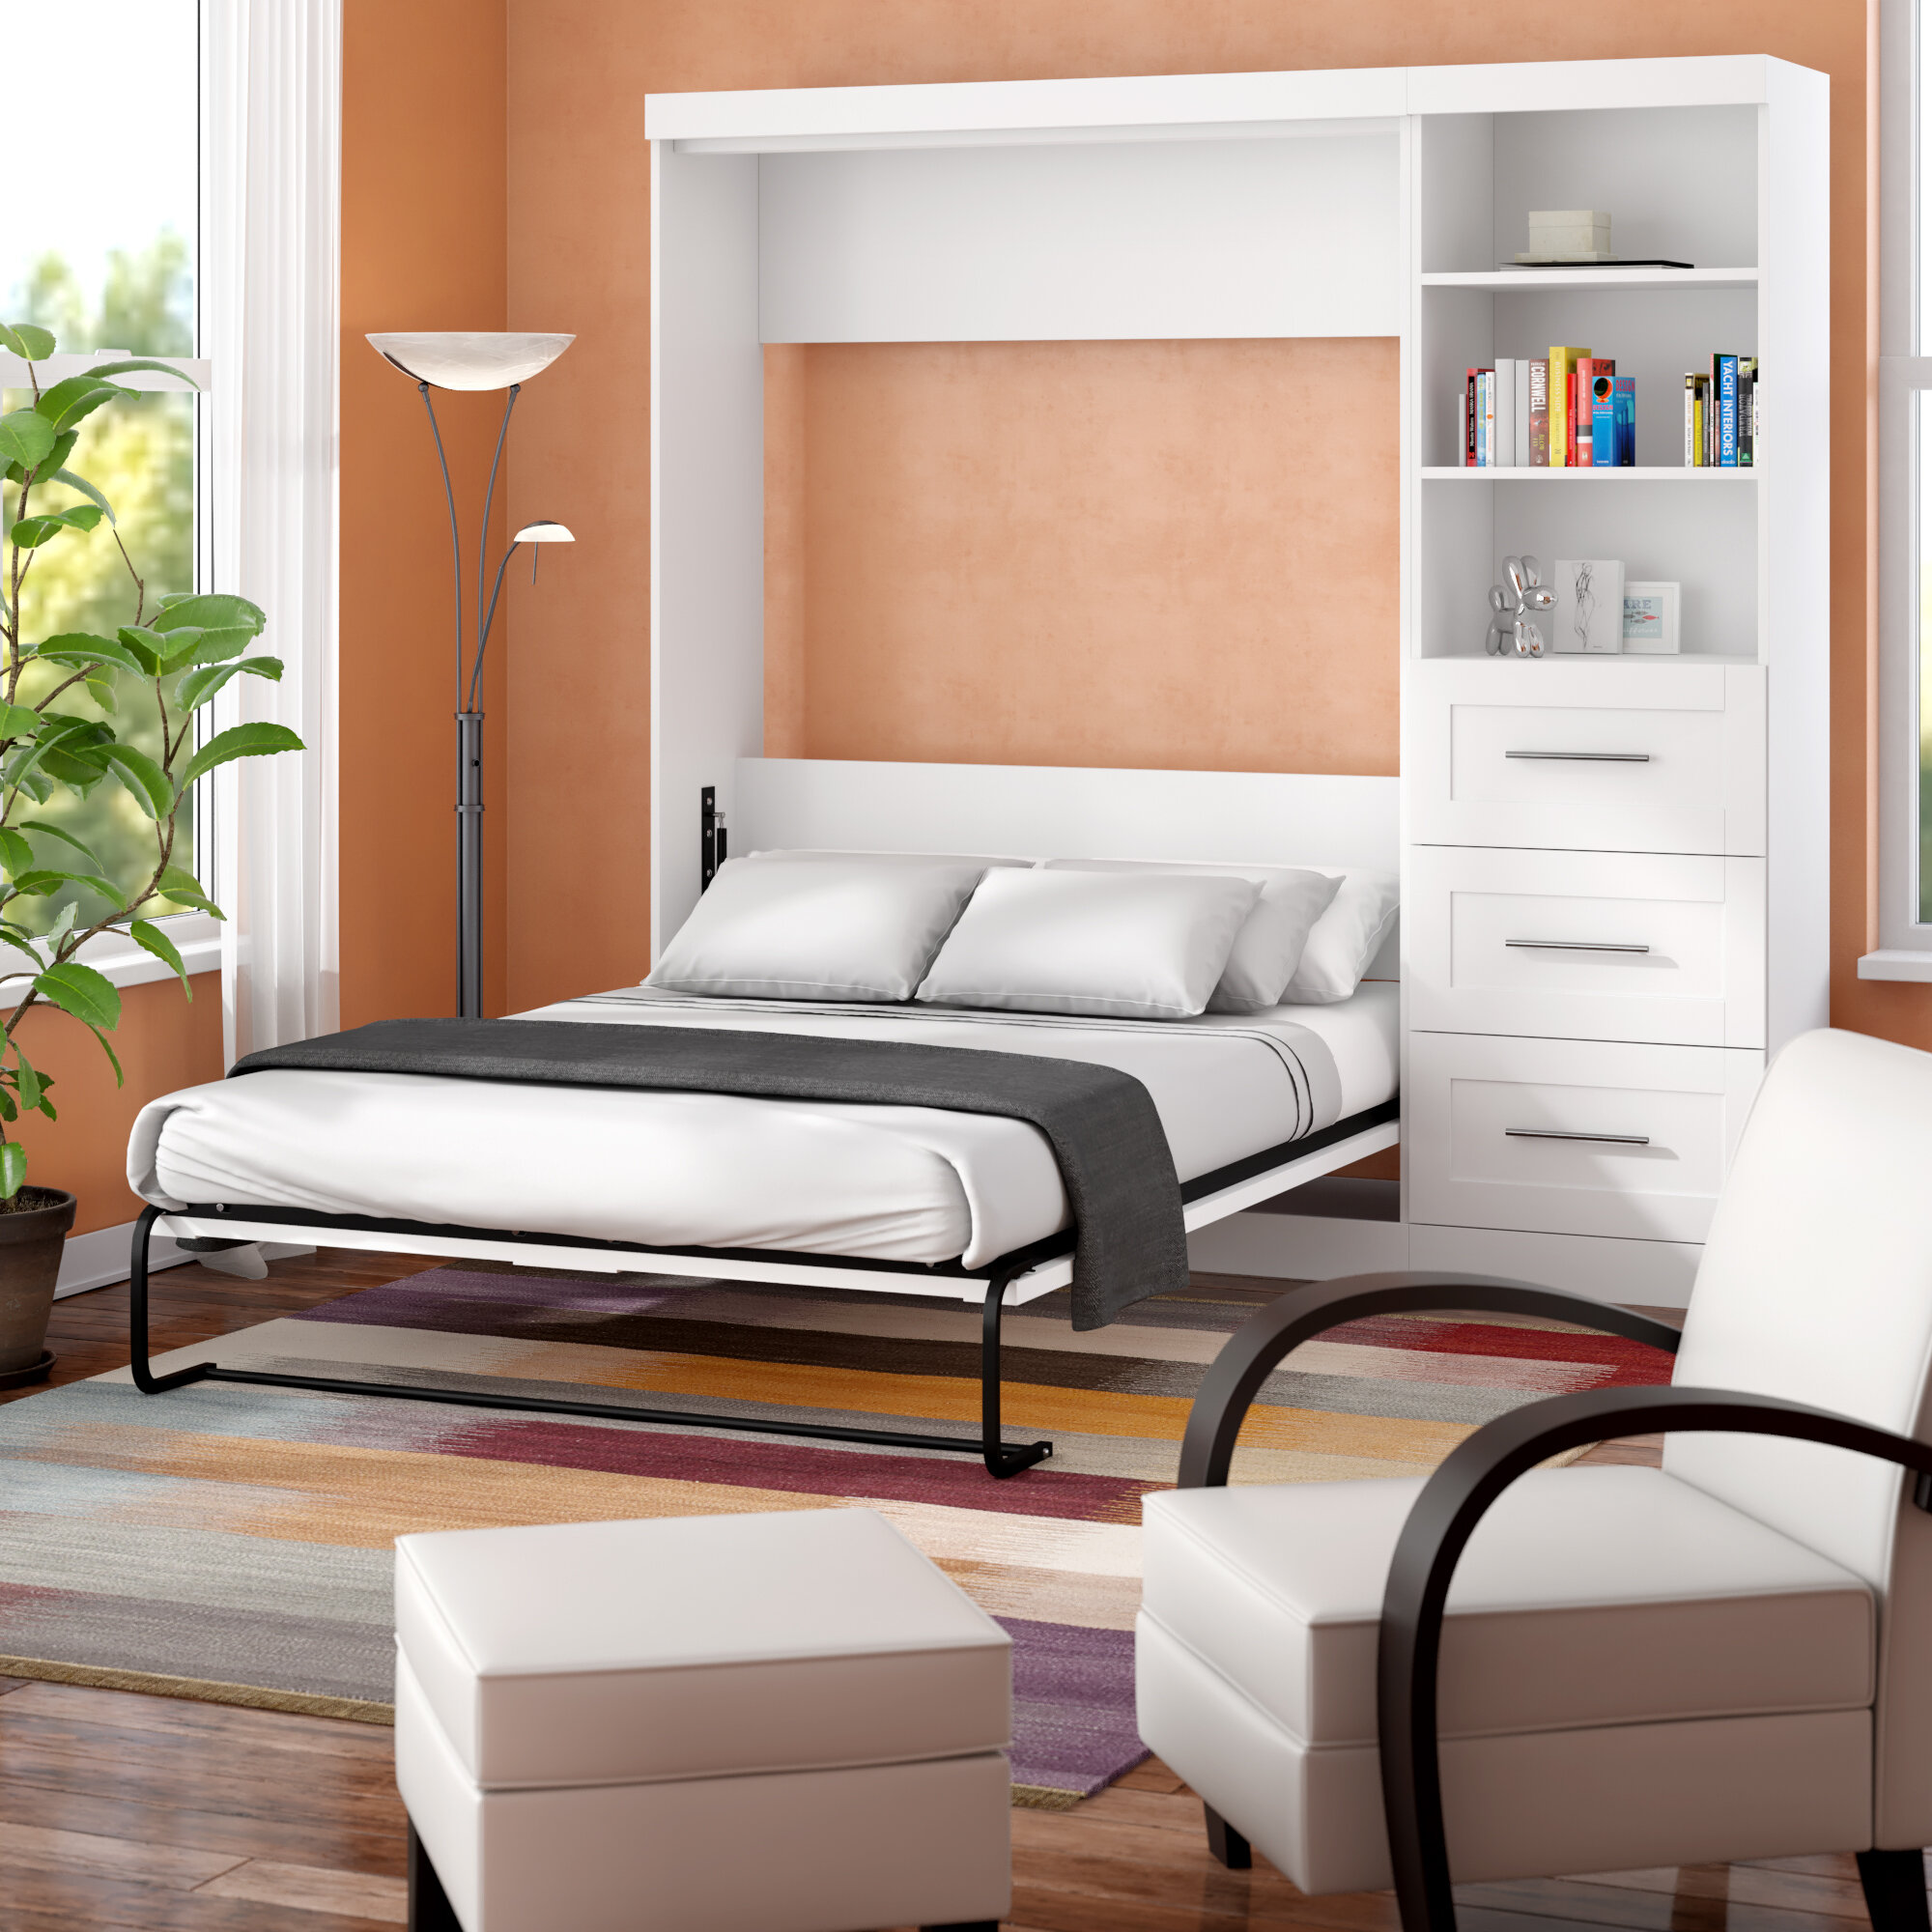 Full Double Size Murphy Beds You Ll Love In 2021 Wayfair